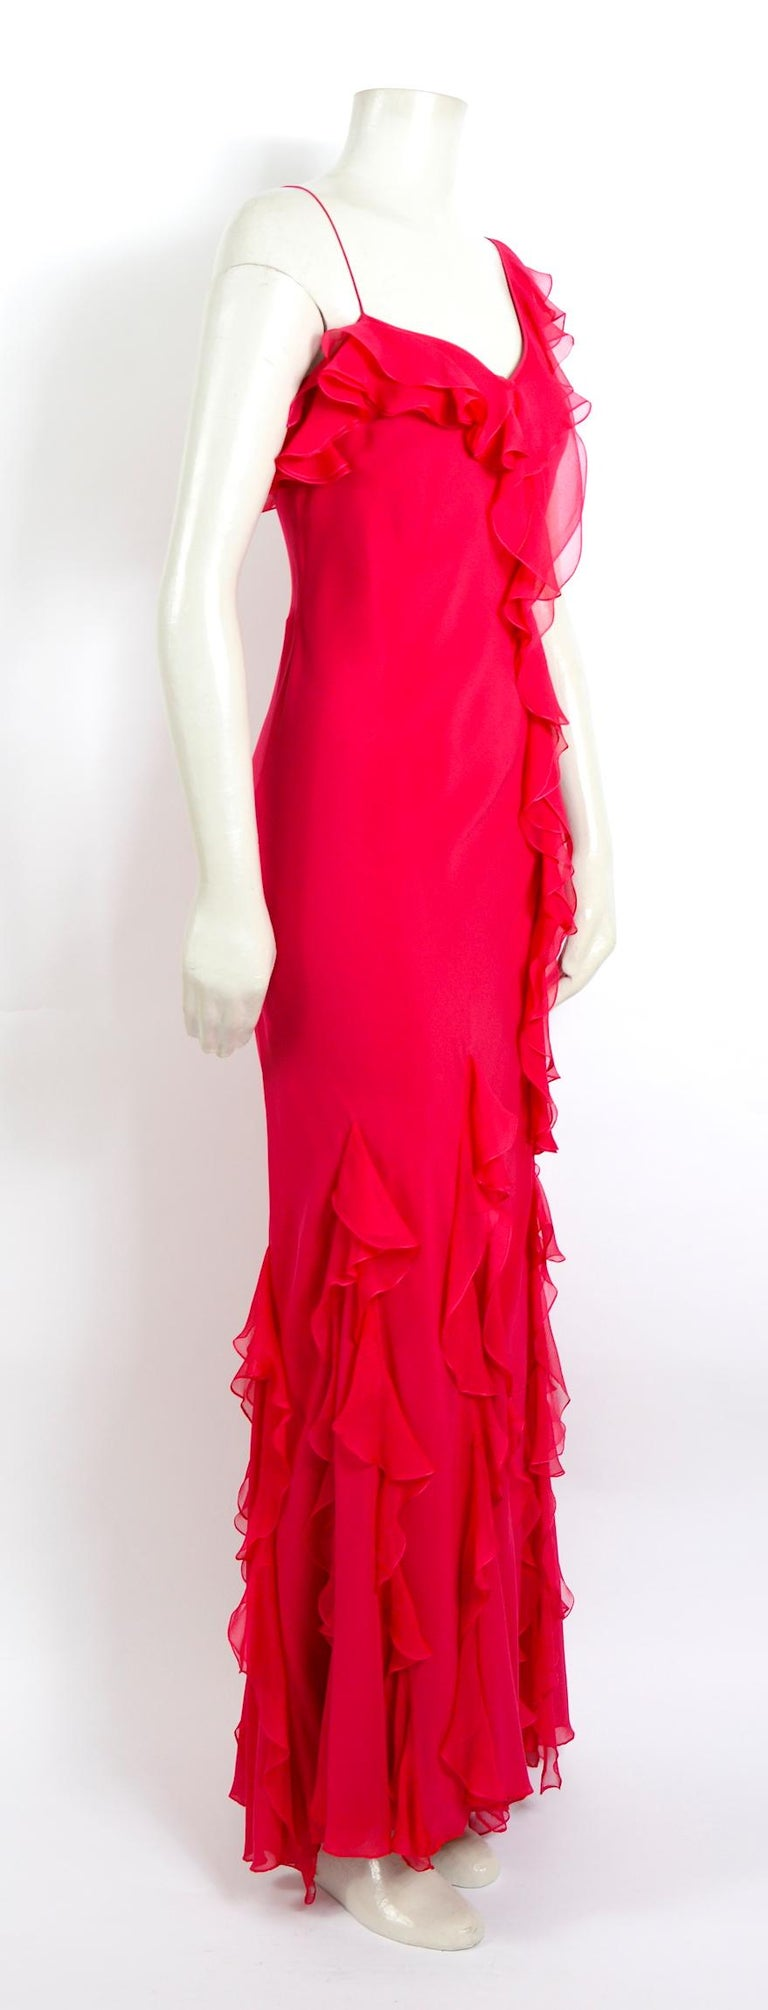 John Galliano 1990s vintage red silk bias cut ruffle dress In Excellent Condition For Sale In Antwerp, BE